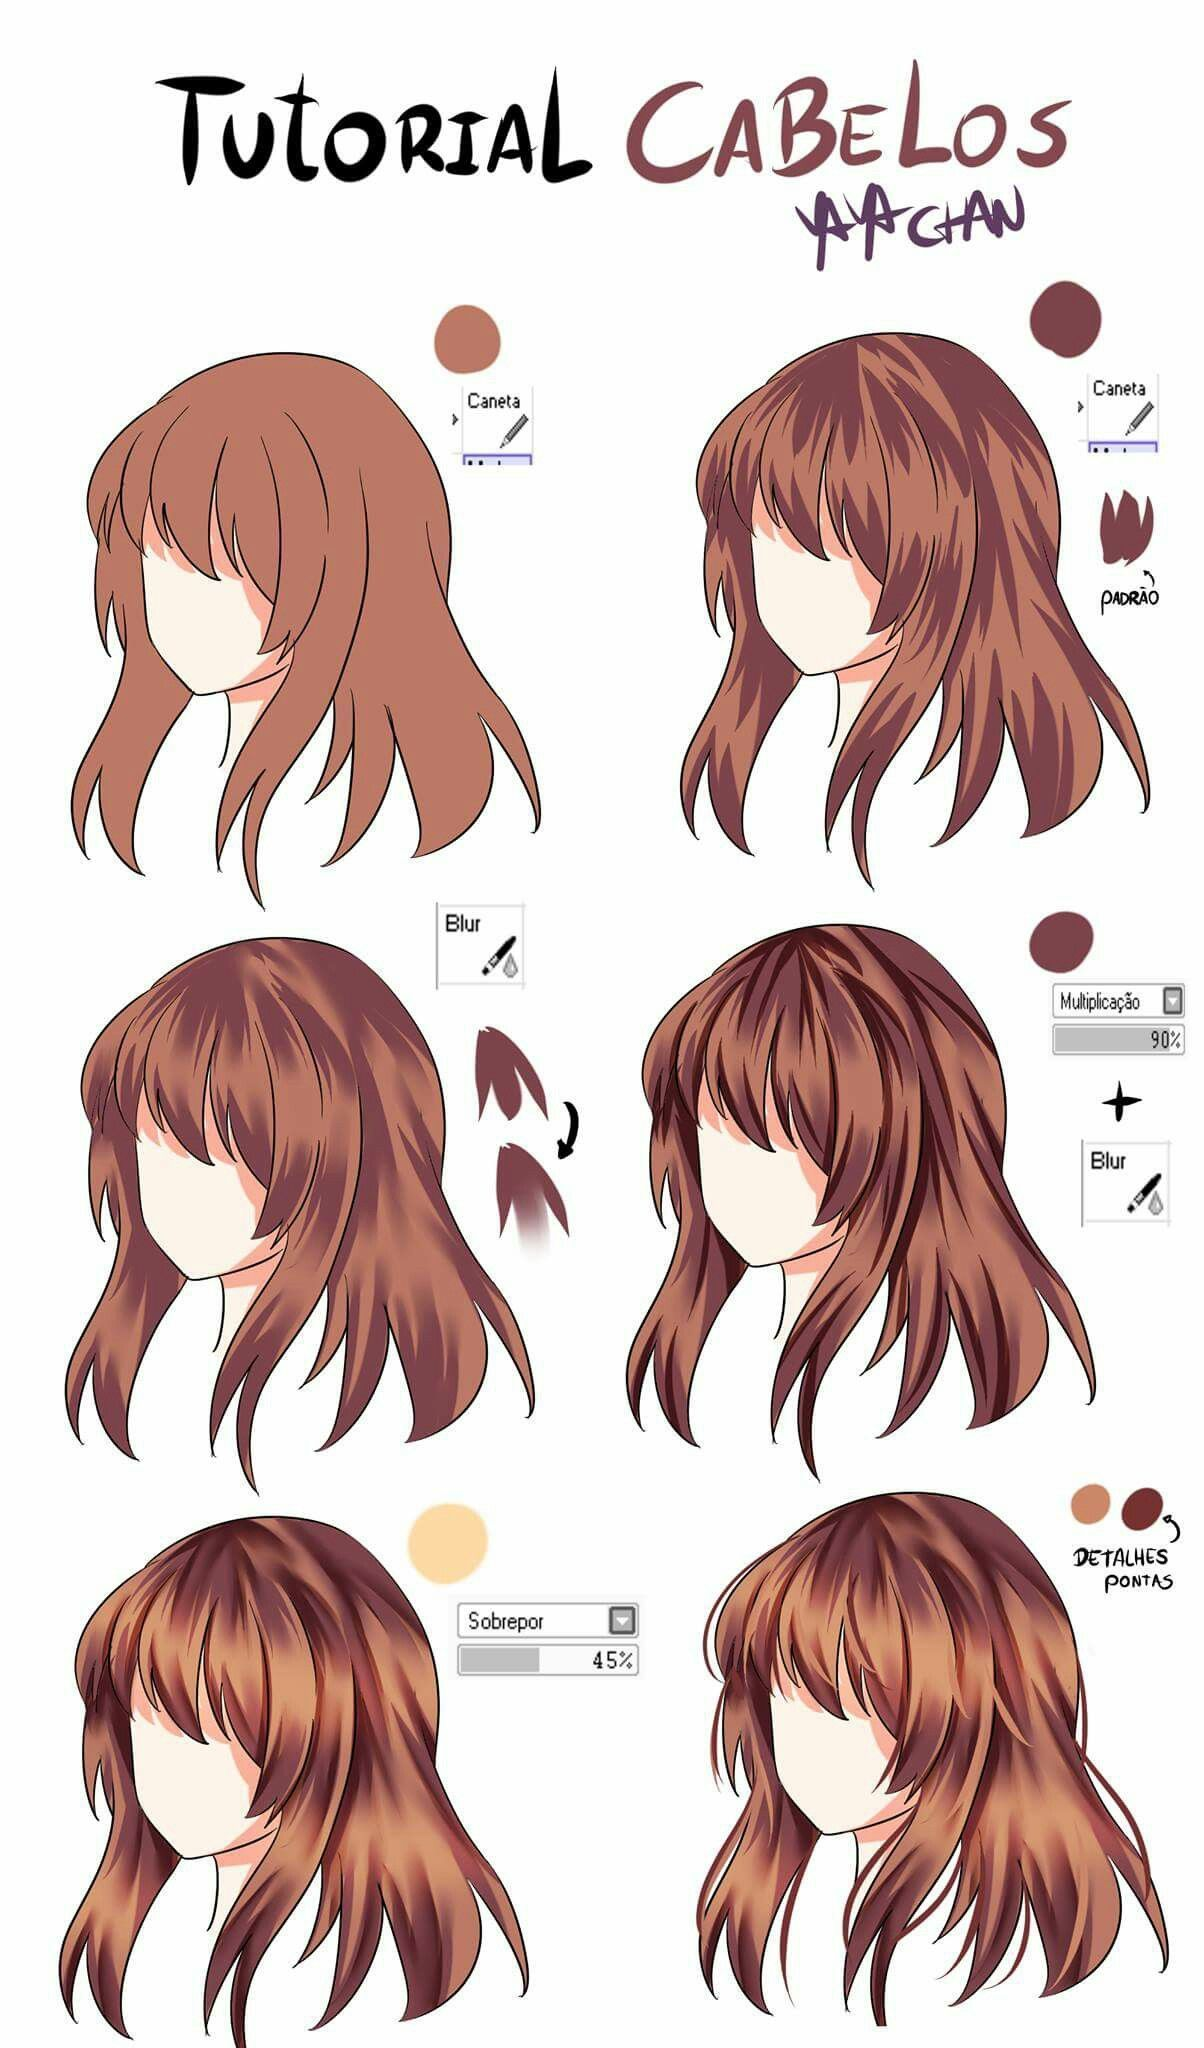 Hair Coloring And Shading Digital Painting Tutorials Digital Art Tutorial Painting Tutorial